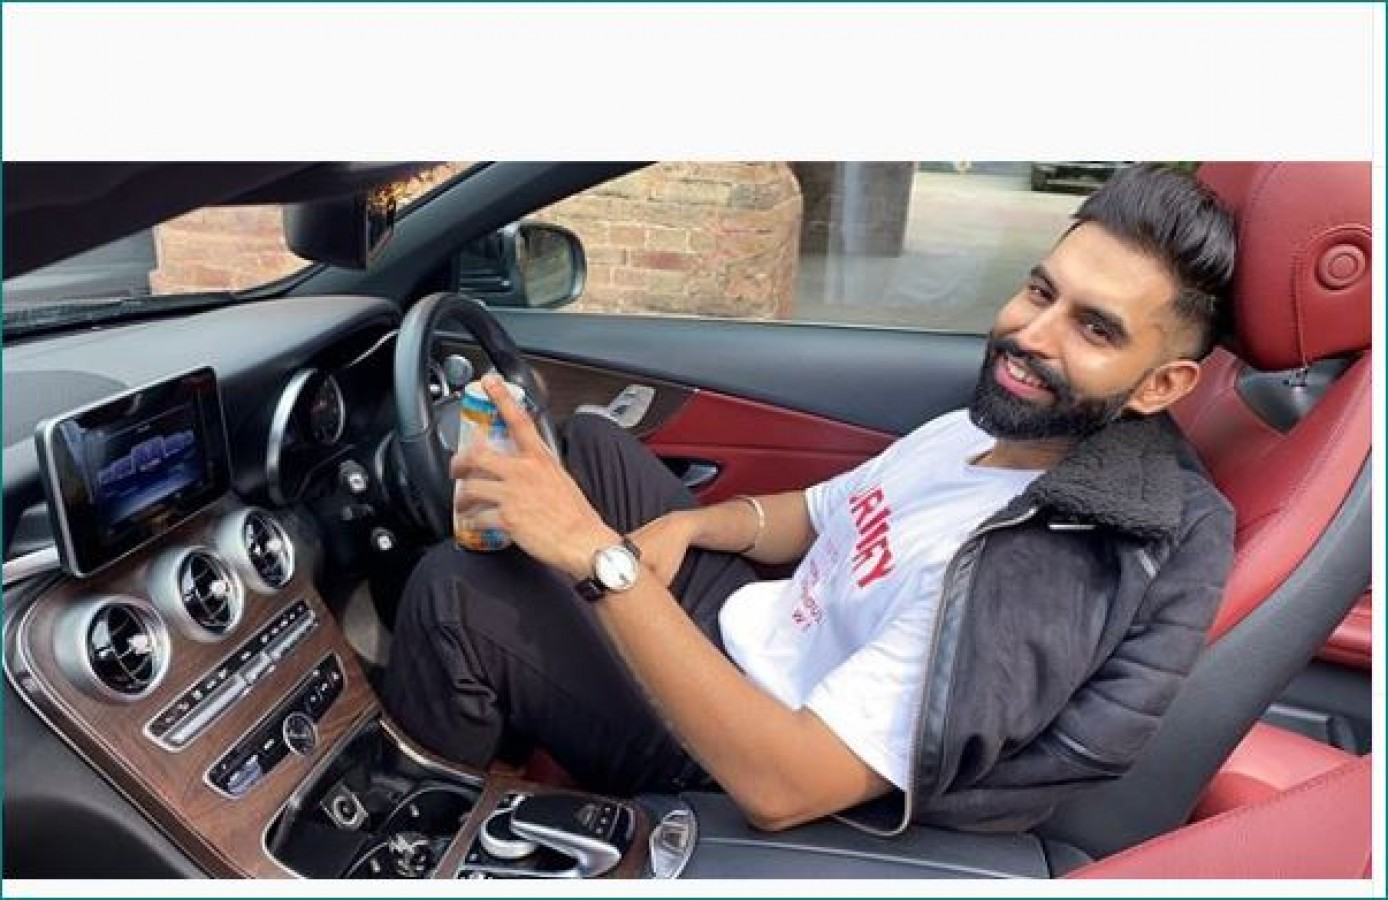 haye tauba parmish verma mp3 song download